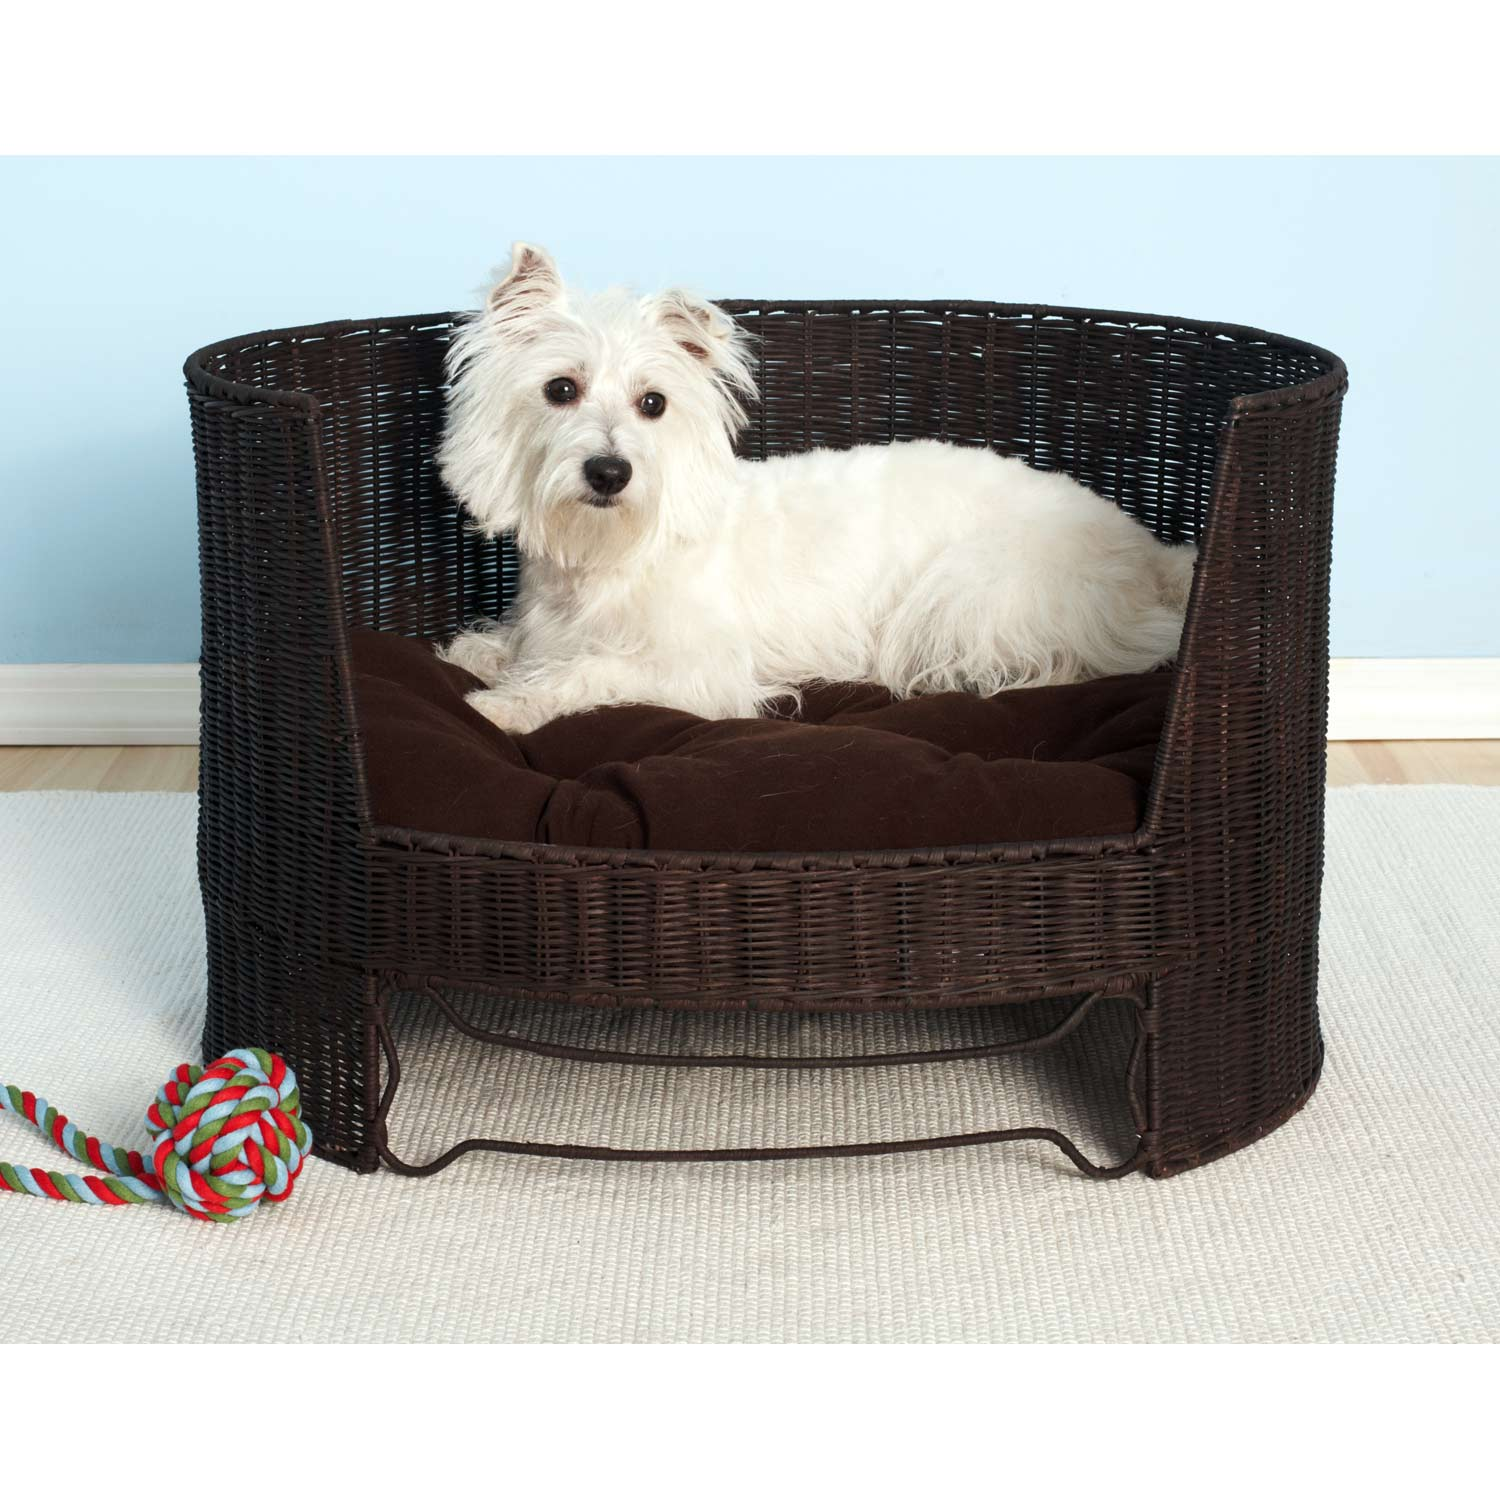 Handwoven Faux-wicker Pet/Dog Day Bed with Brown Indoor Cushion